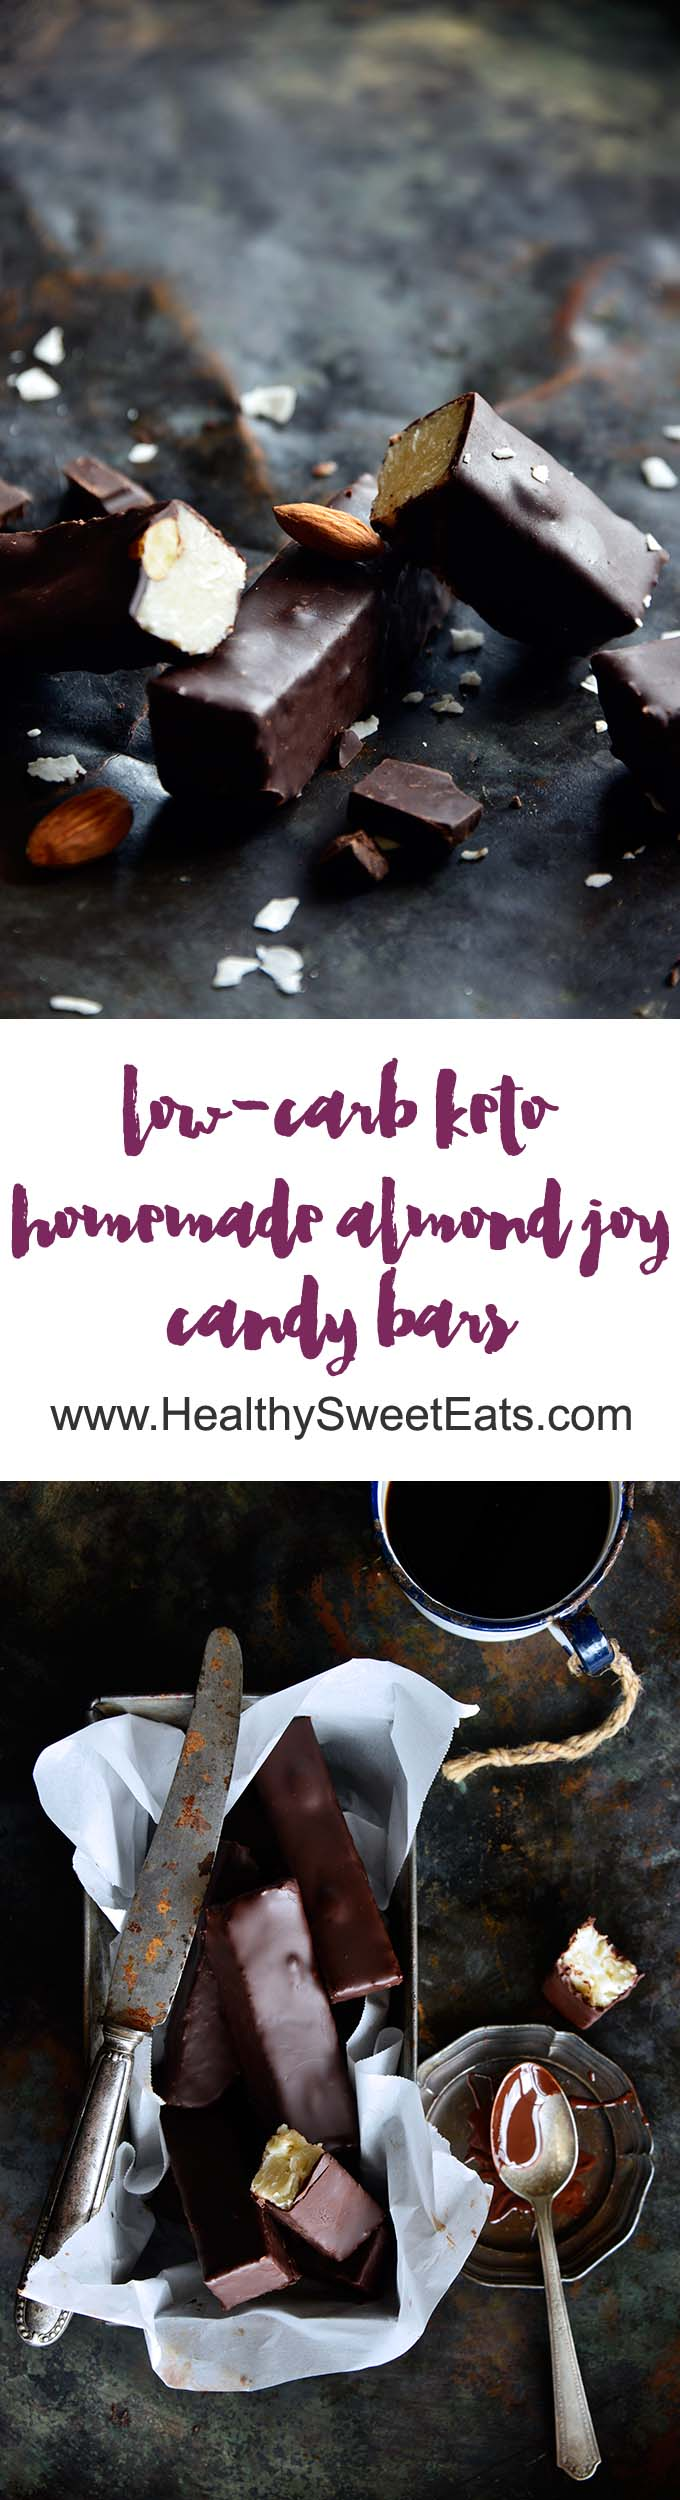 Keto Homemade Almond Joy Candy Bars Long Pin